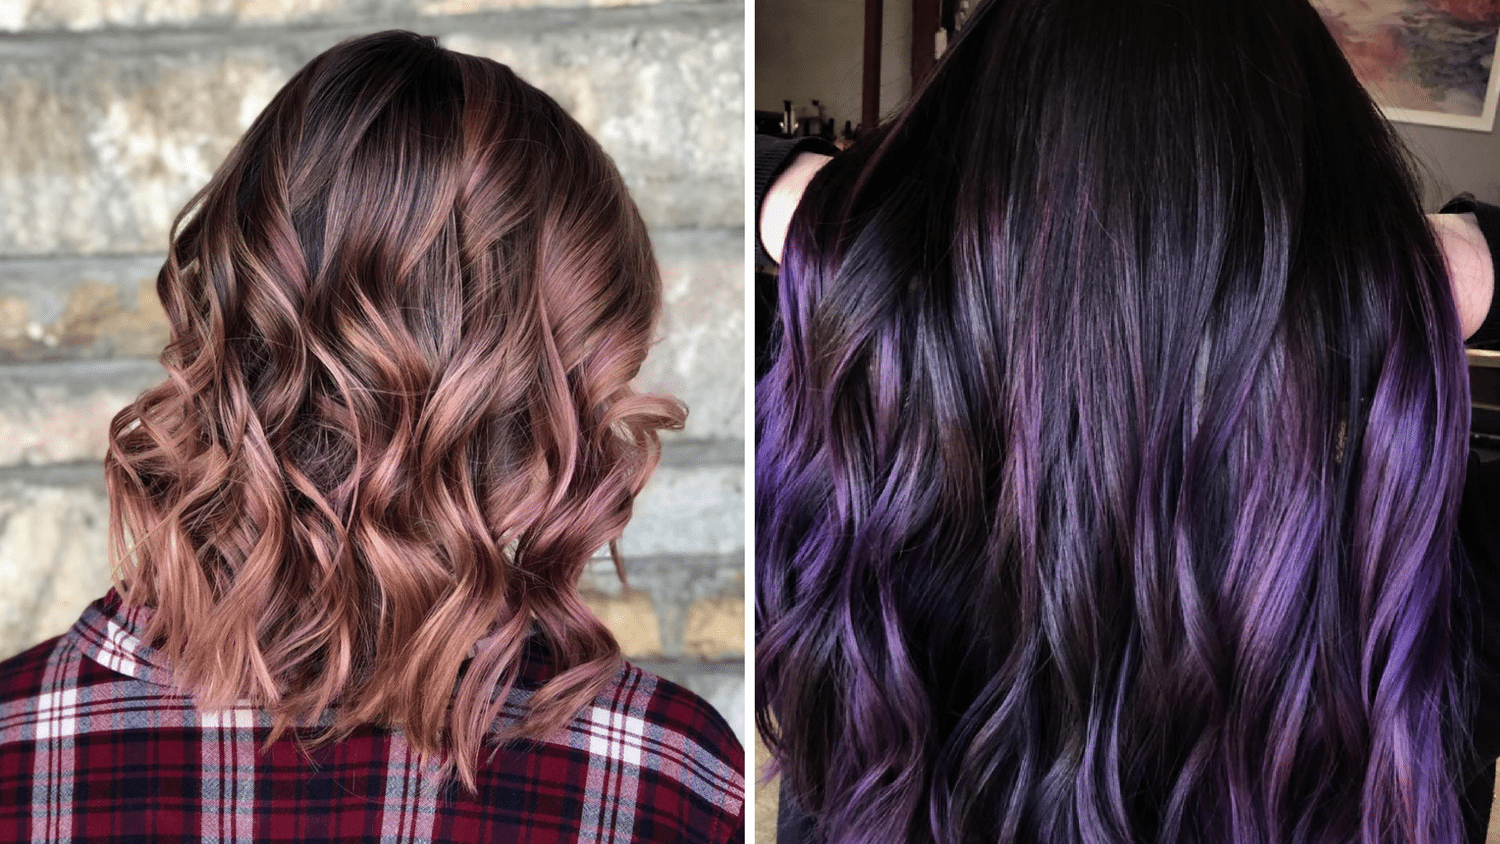 Trendy Ravishing Smoky Purple Ombre Hairstyles Inside Trendy Hair Colors To Try Right Now – Simplemost (View 9 of 20)